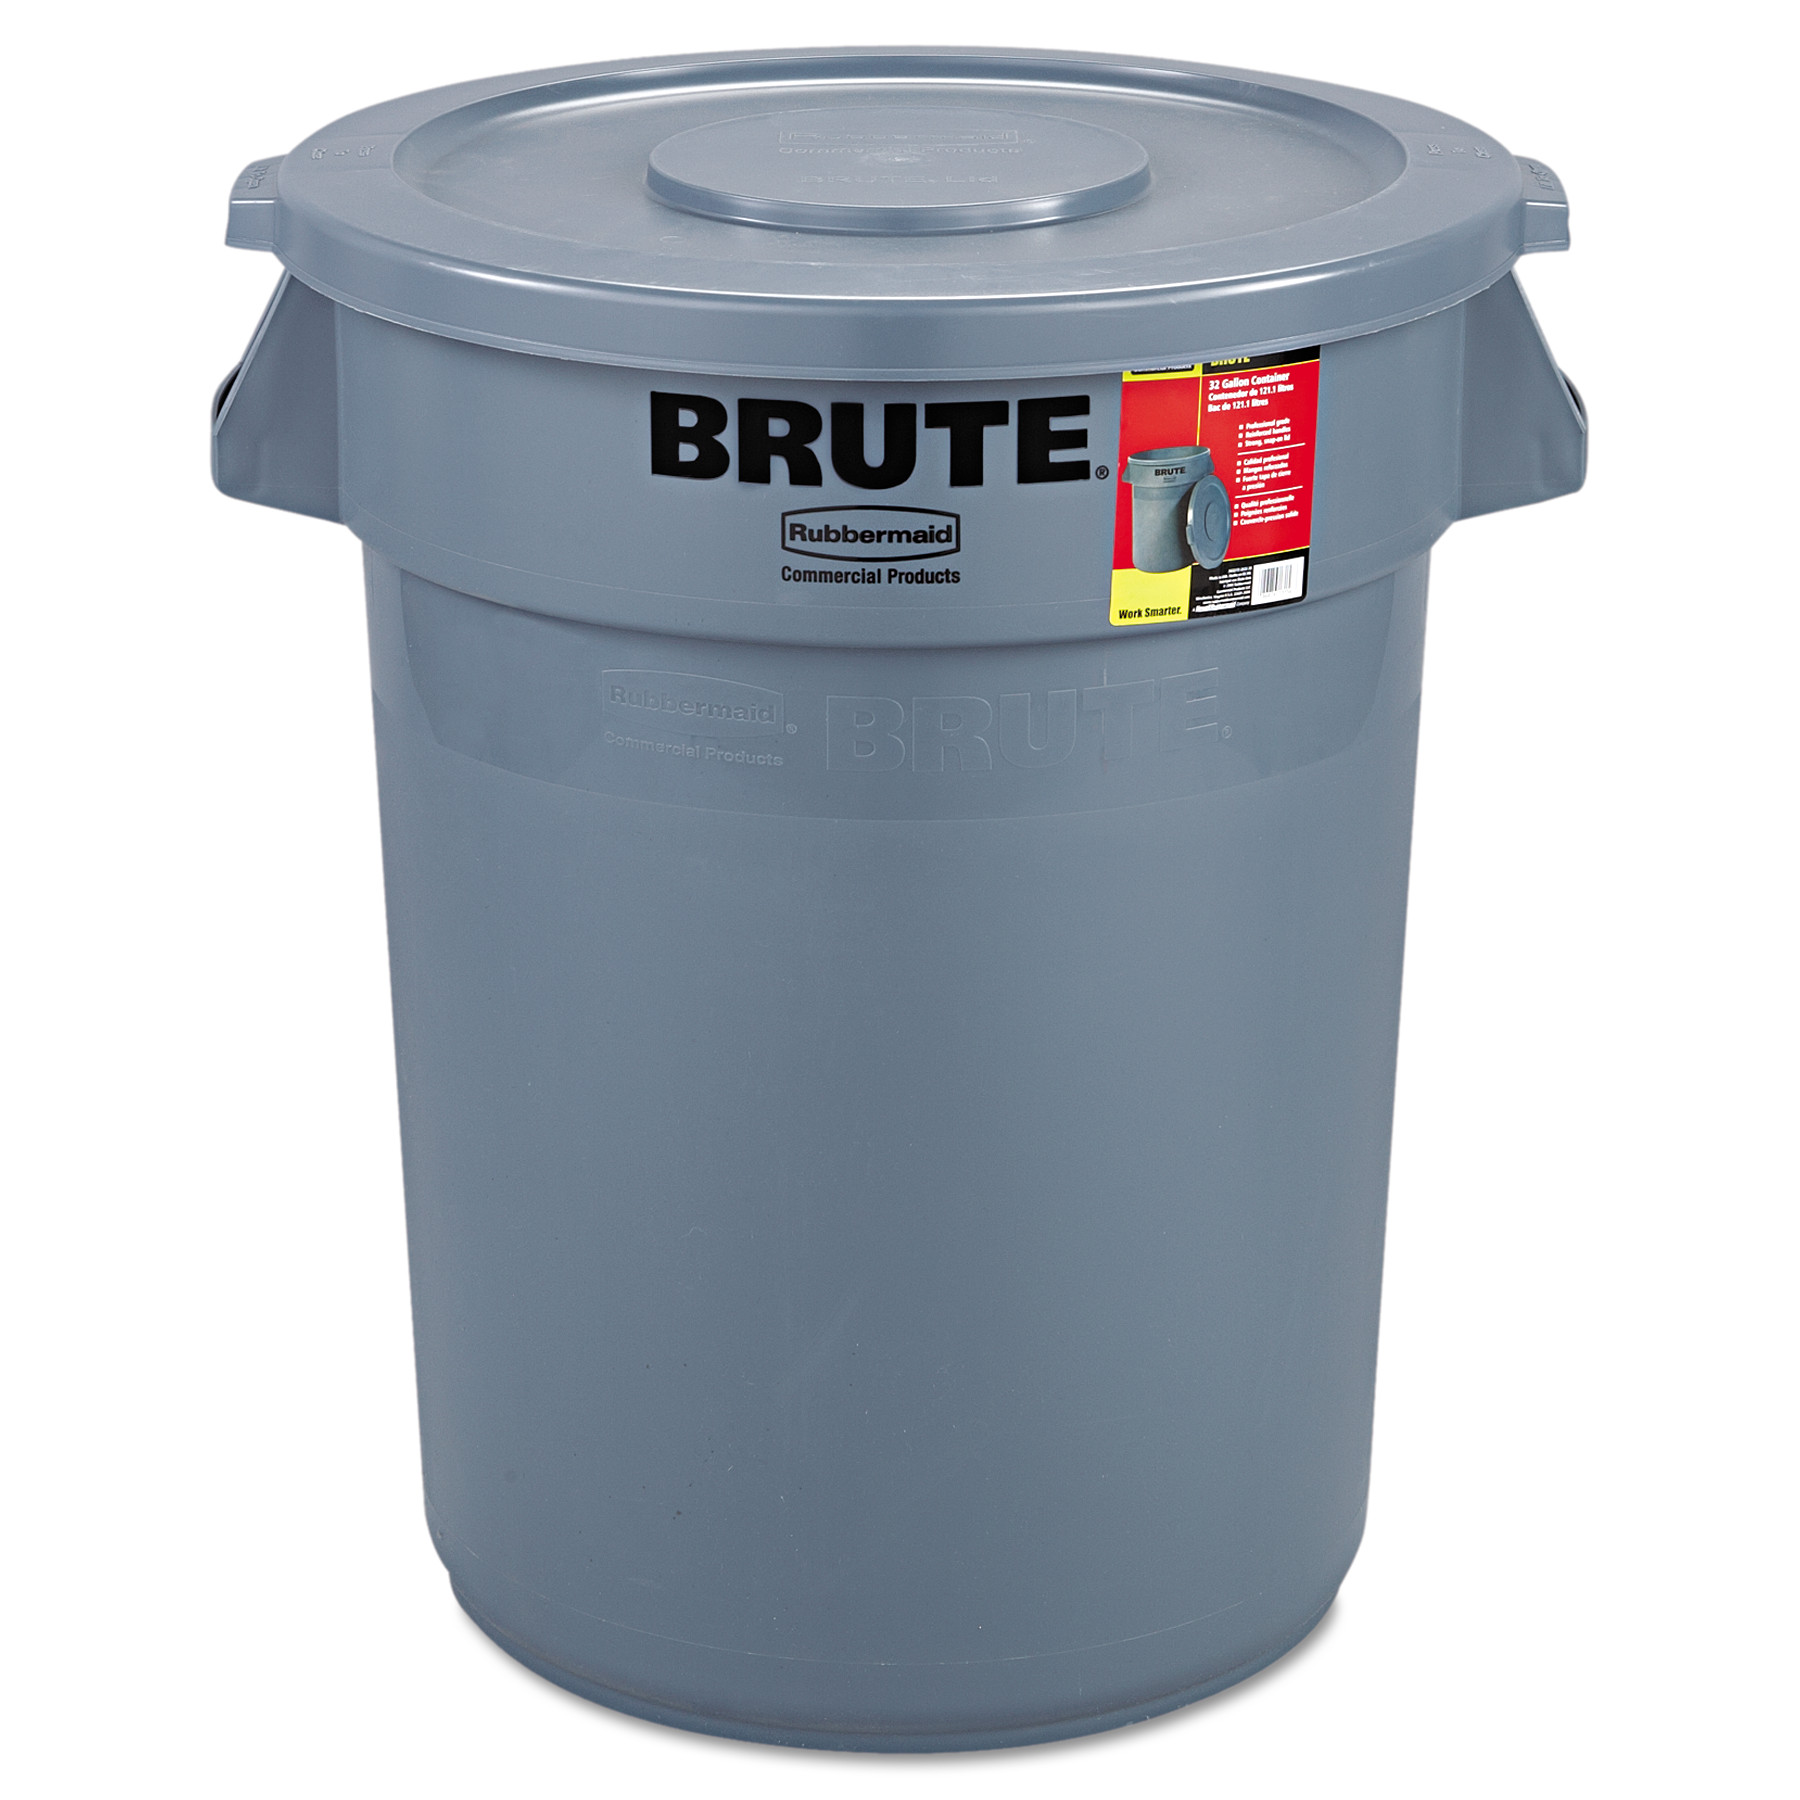 Rubbermaid Commercial Brute Container All-Inclusive, Round, Plastic, 32gal, Gray